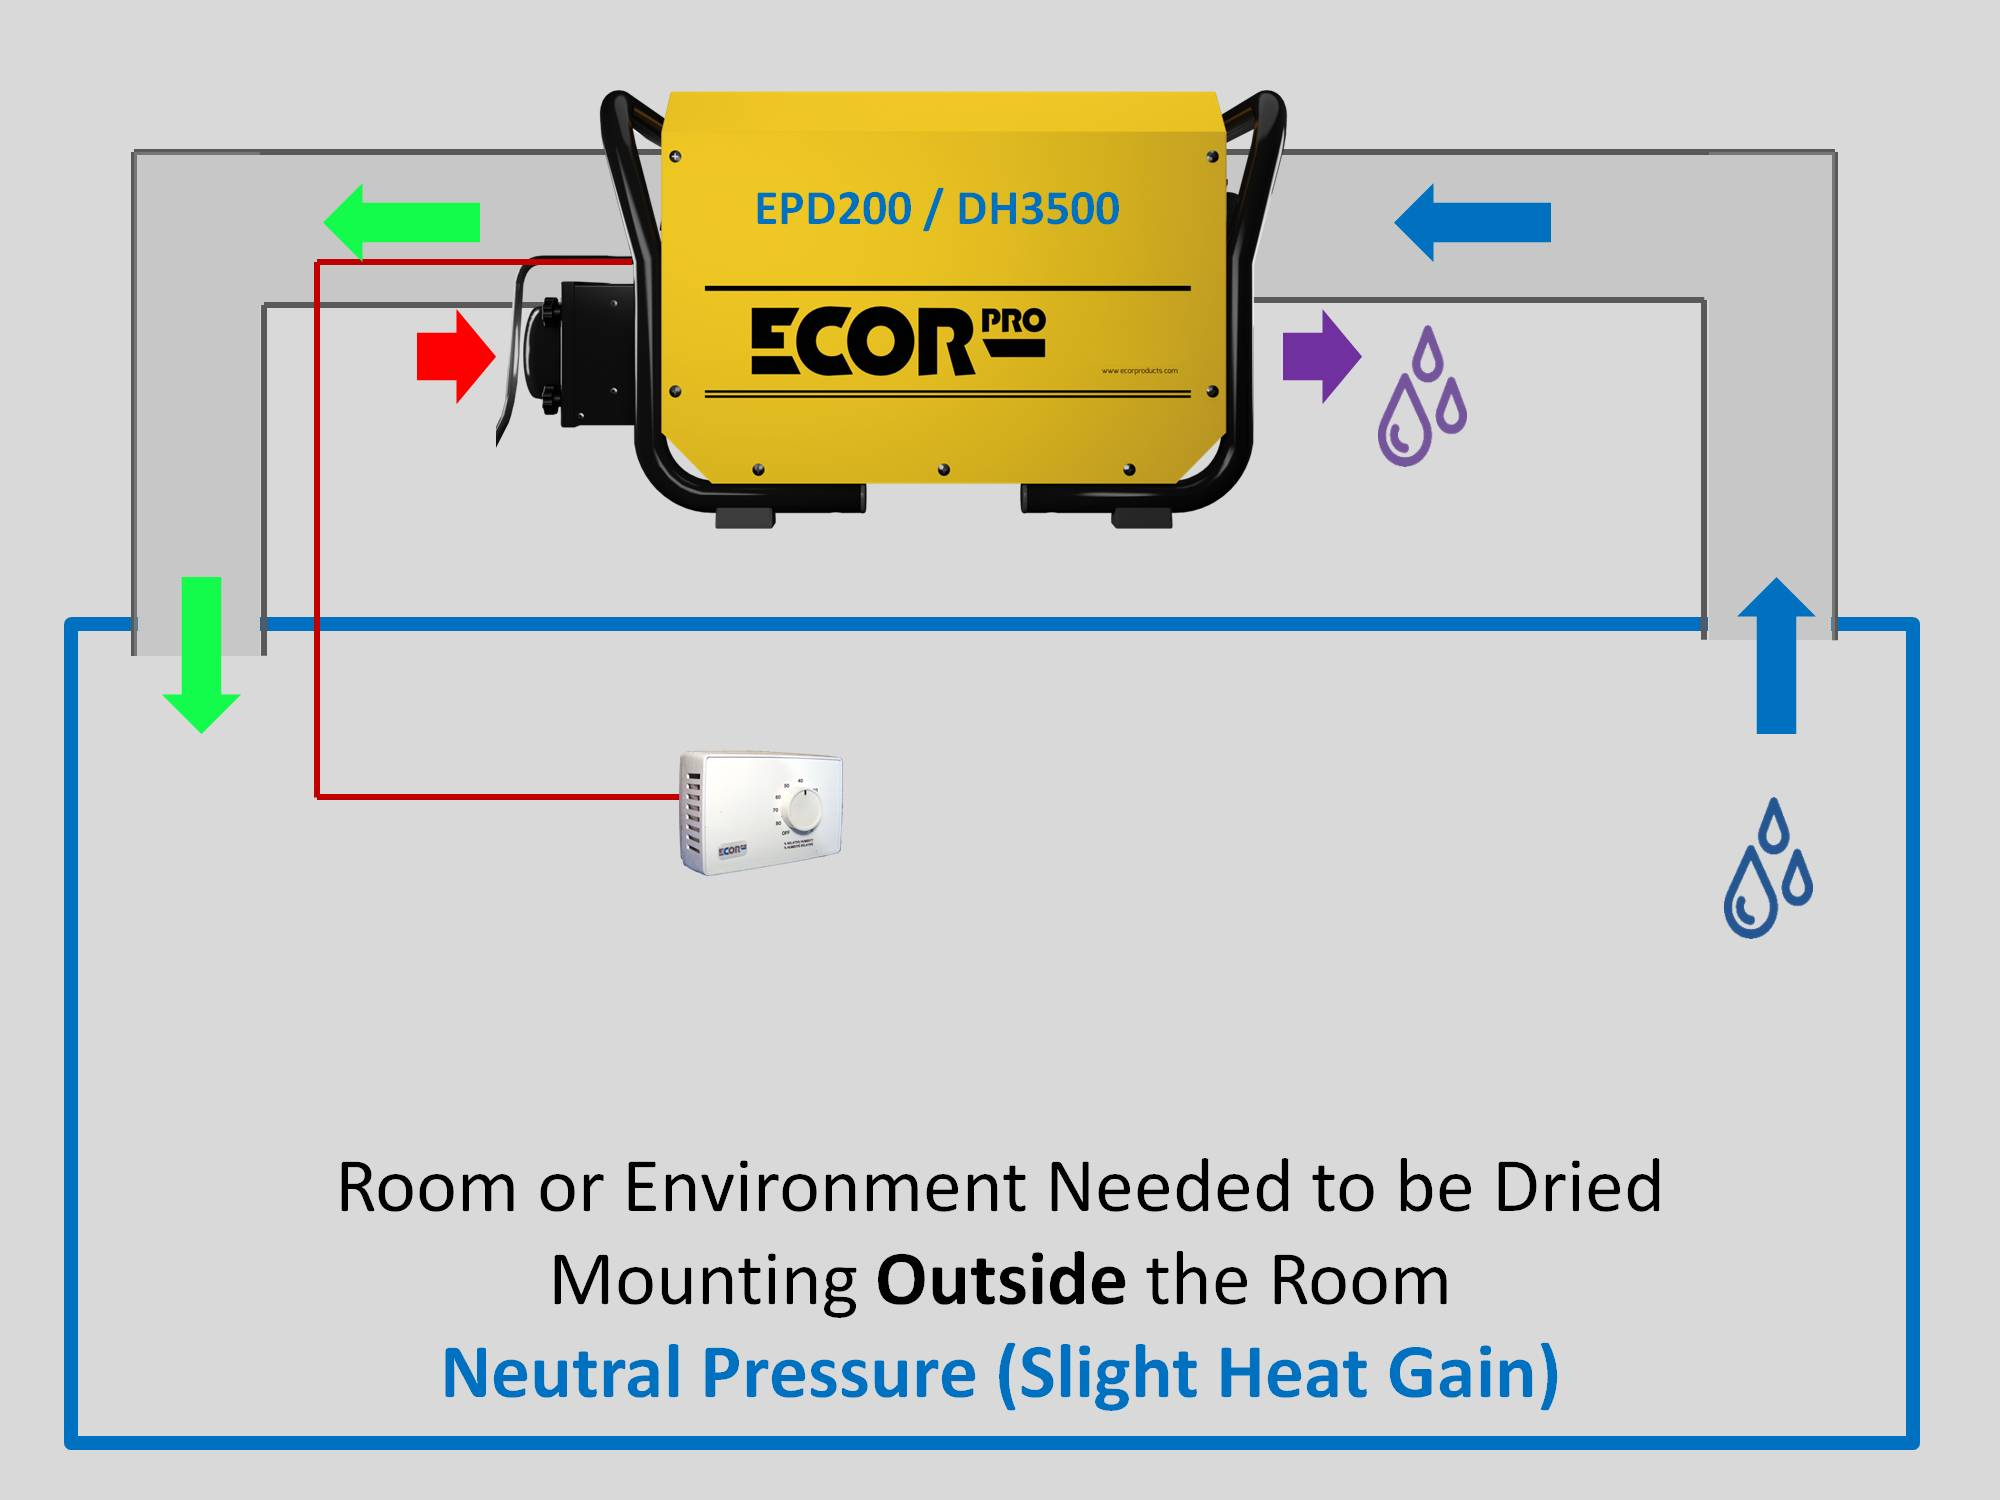 EPD200 EDH3500 dehumidifiers by Ecor Pro